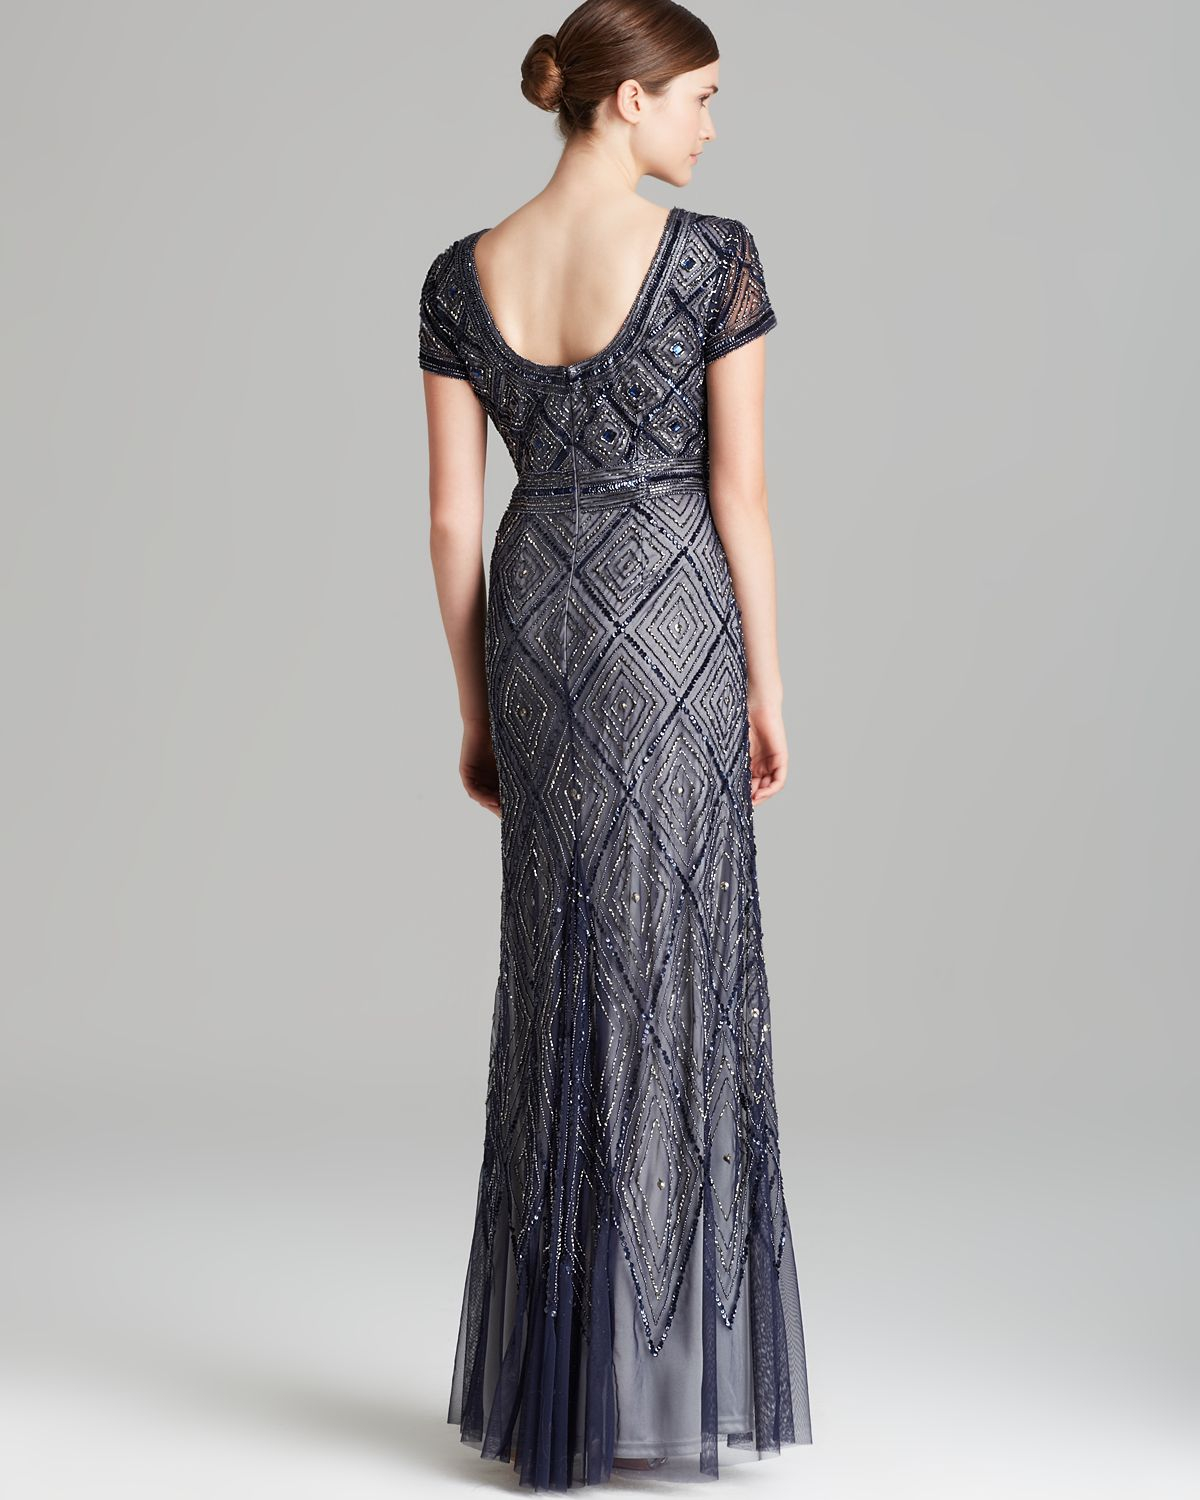 Adrianna Papell Gown Short Sleeve Deco Diamond Beaded In